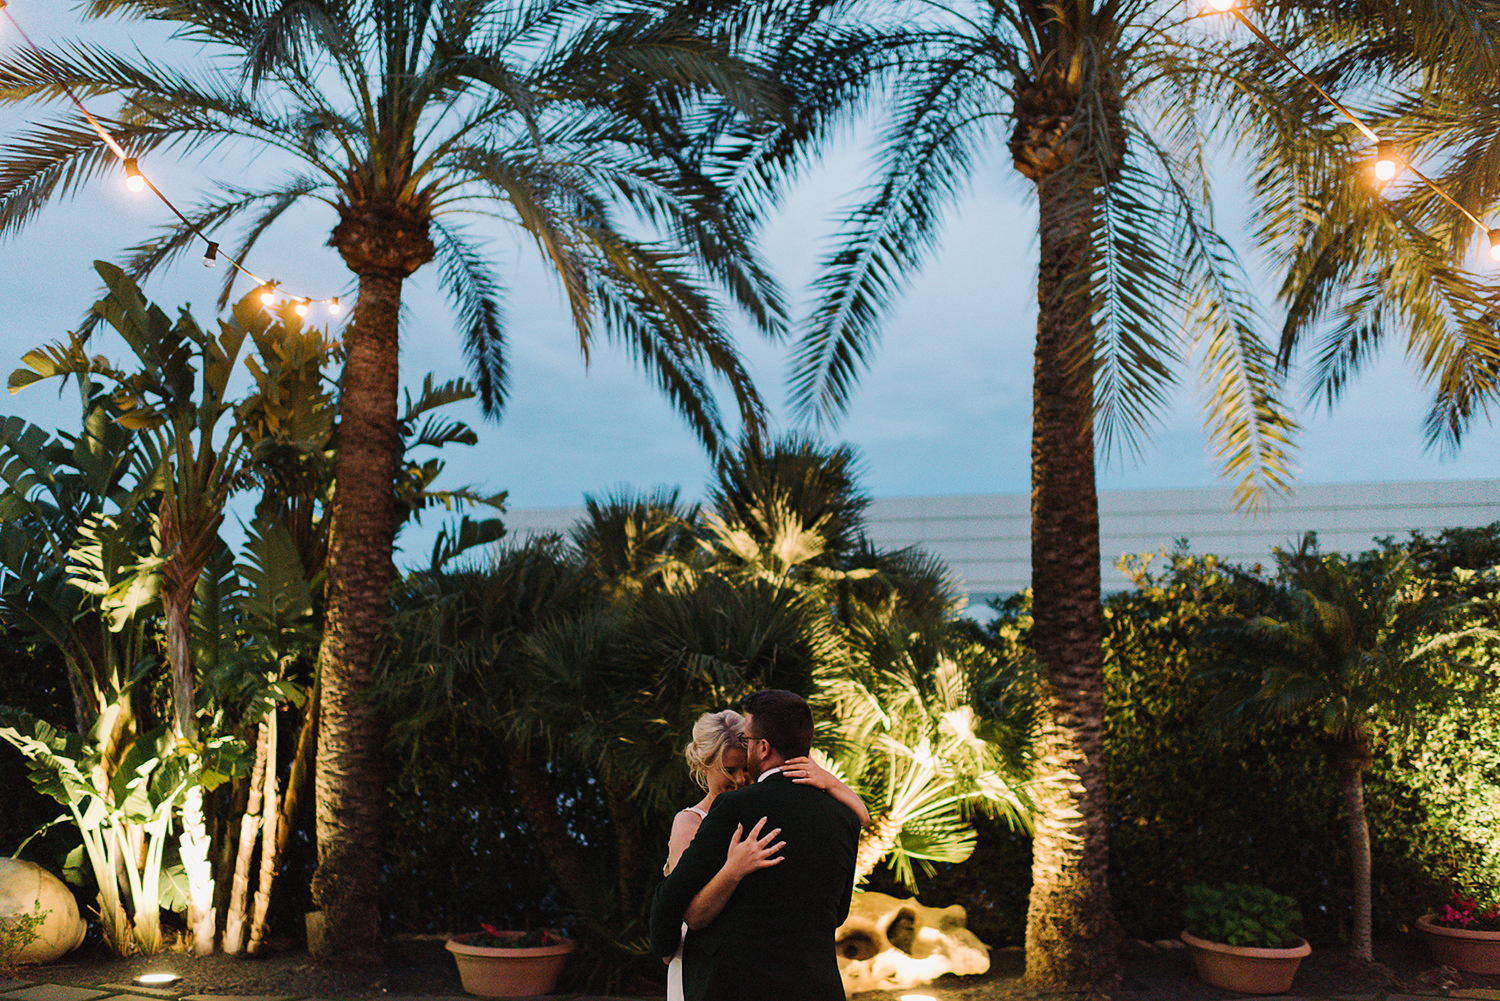 photographer-destination-wedding-photographer-from-toronto-ryanne-hollies-photography-documentary-editorial-style-toronto-wedding-photographer-junebug-weddings-reception-bride-and-groom-sunset-portraits-blue-hour-palms-string-lights-moments.jpg